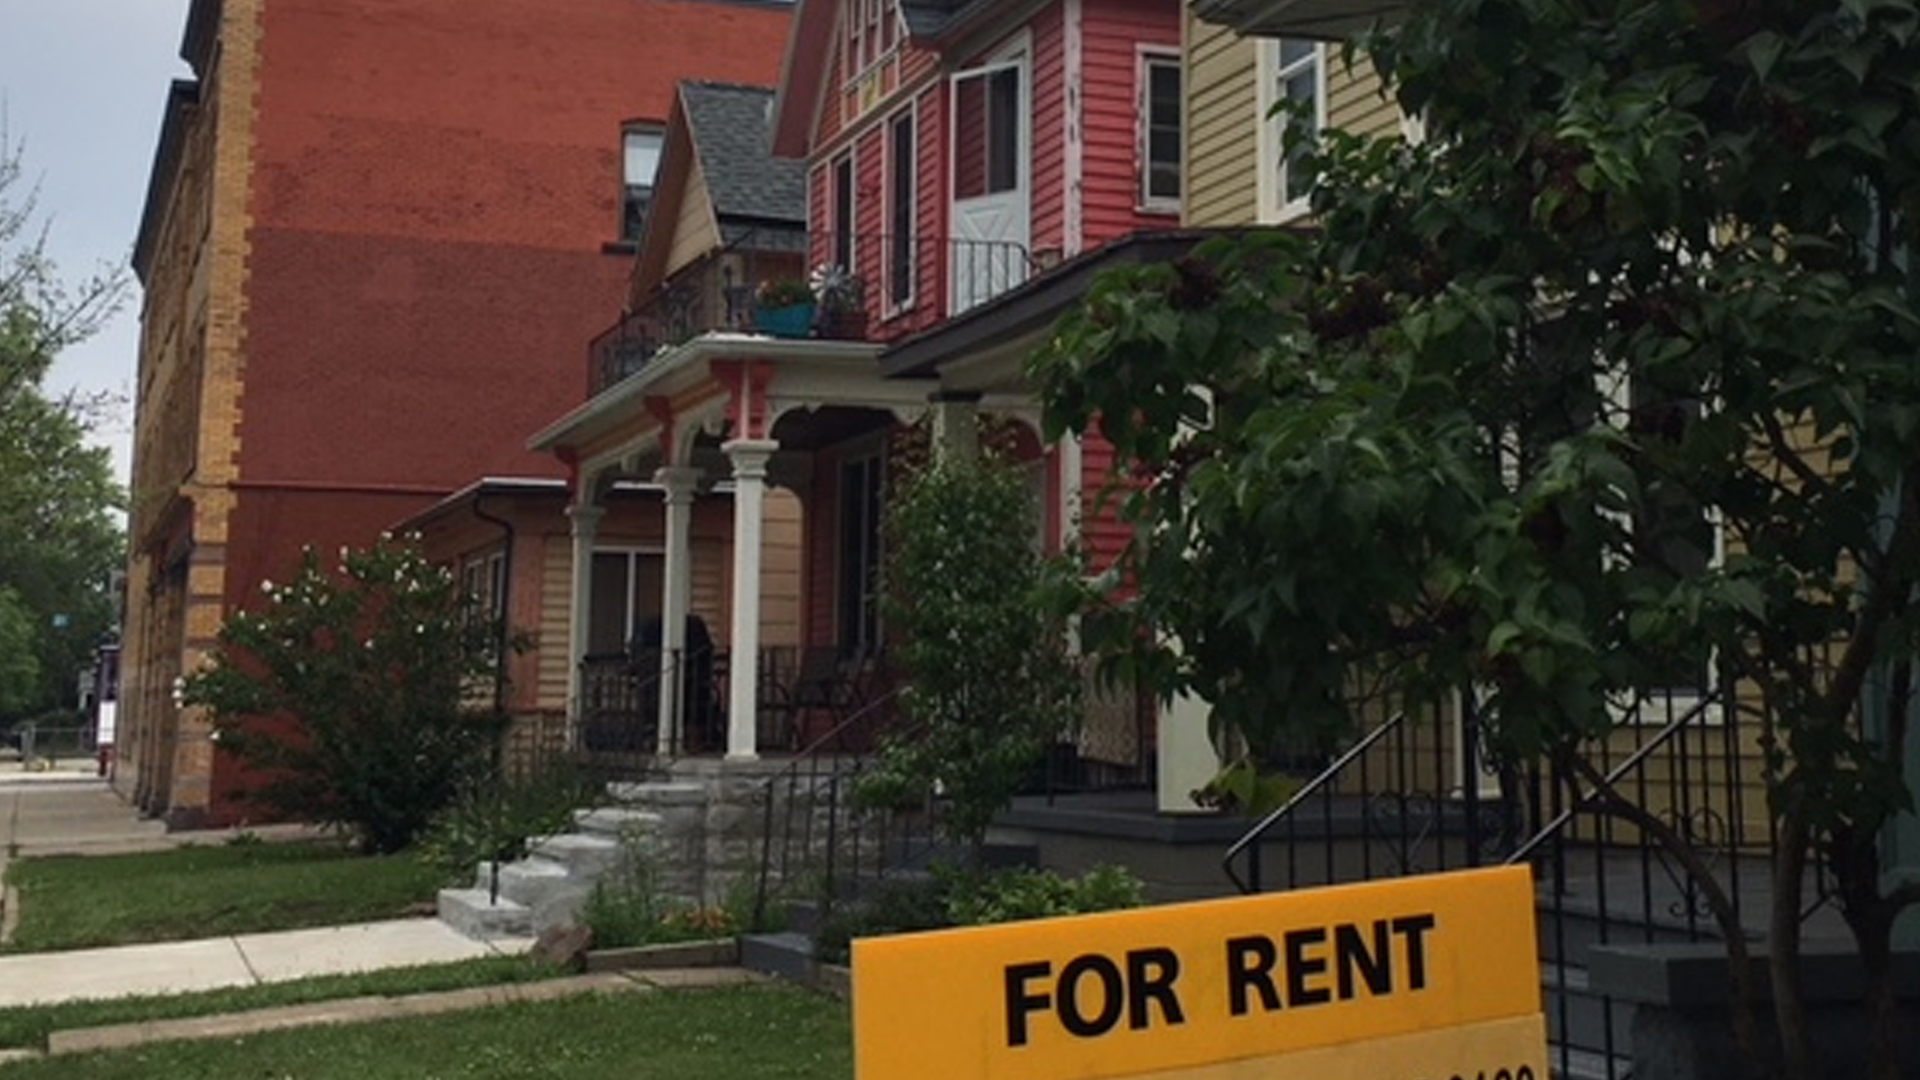 Affordable housing a 'huge problem' on Buffalo's West Side